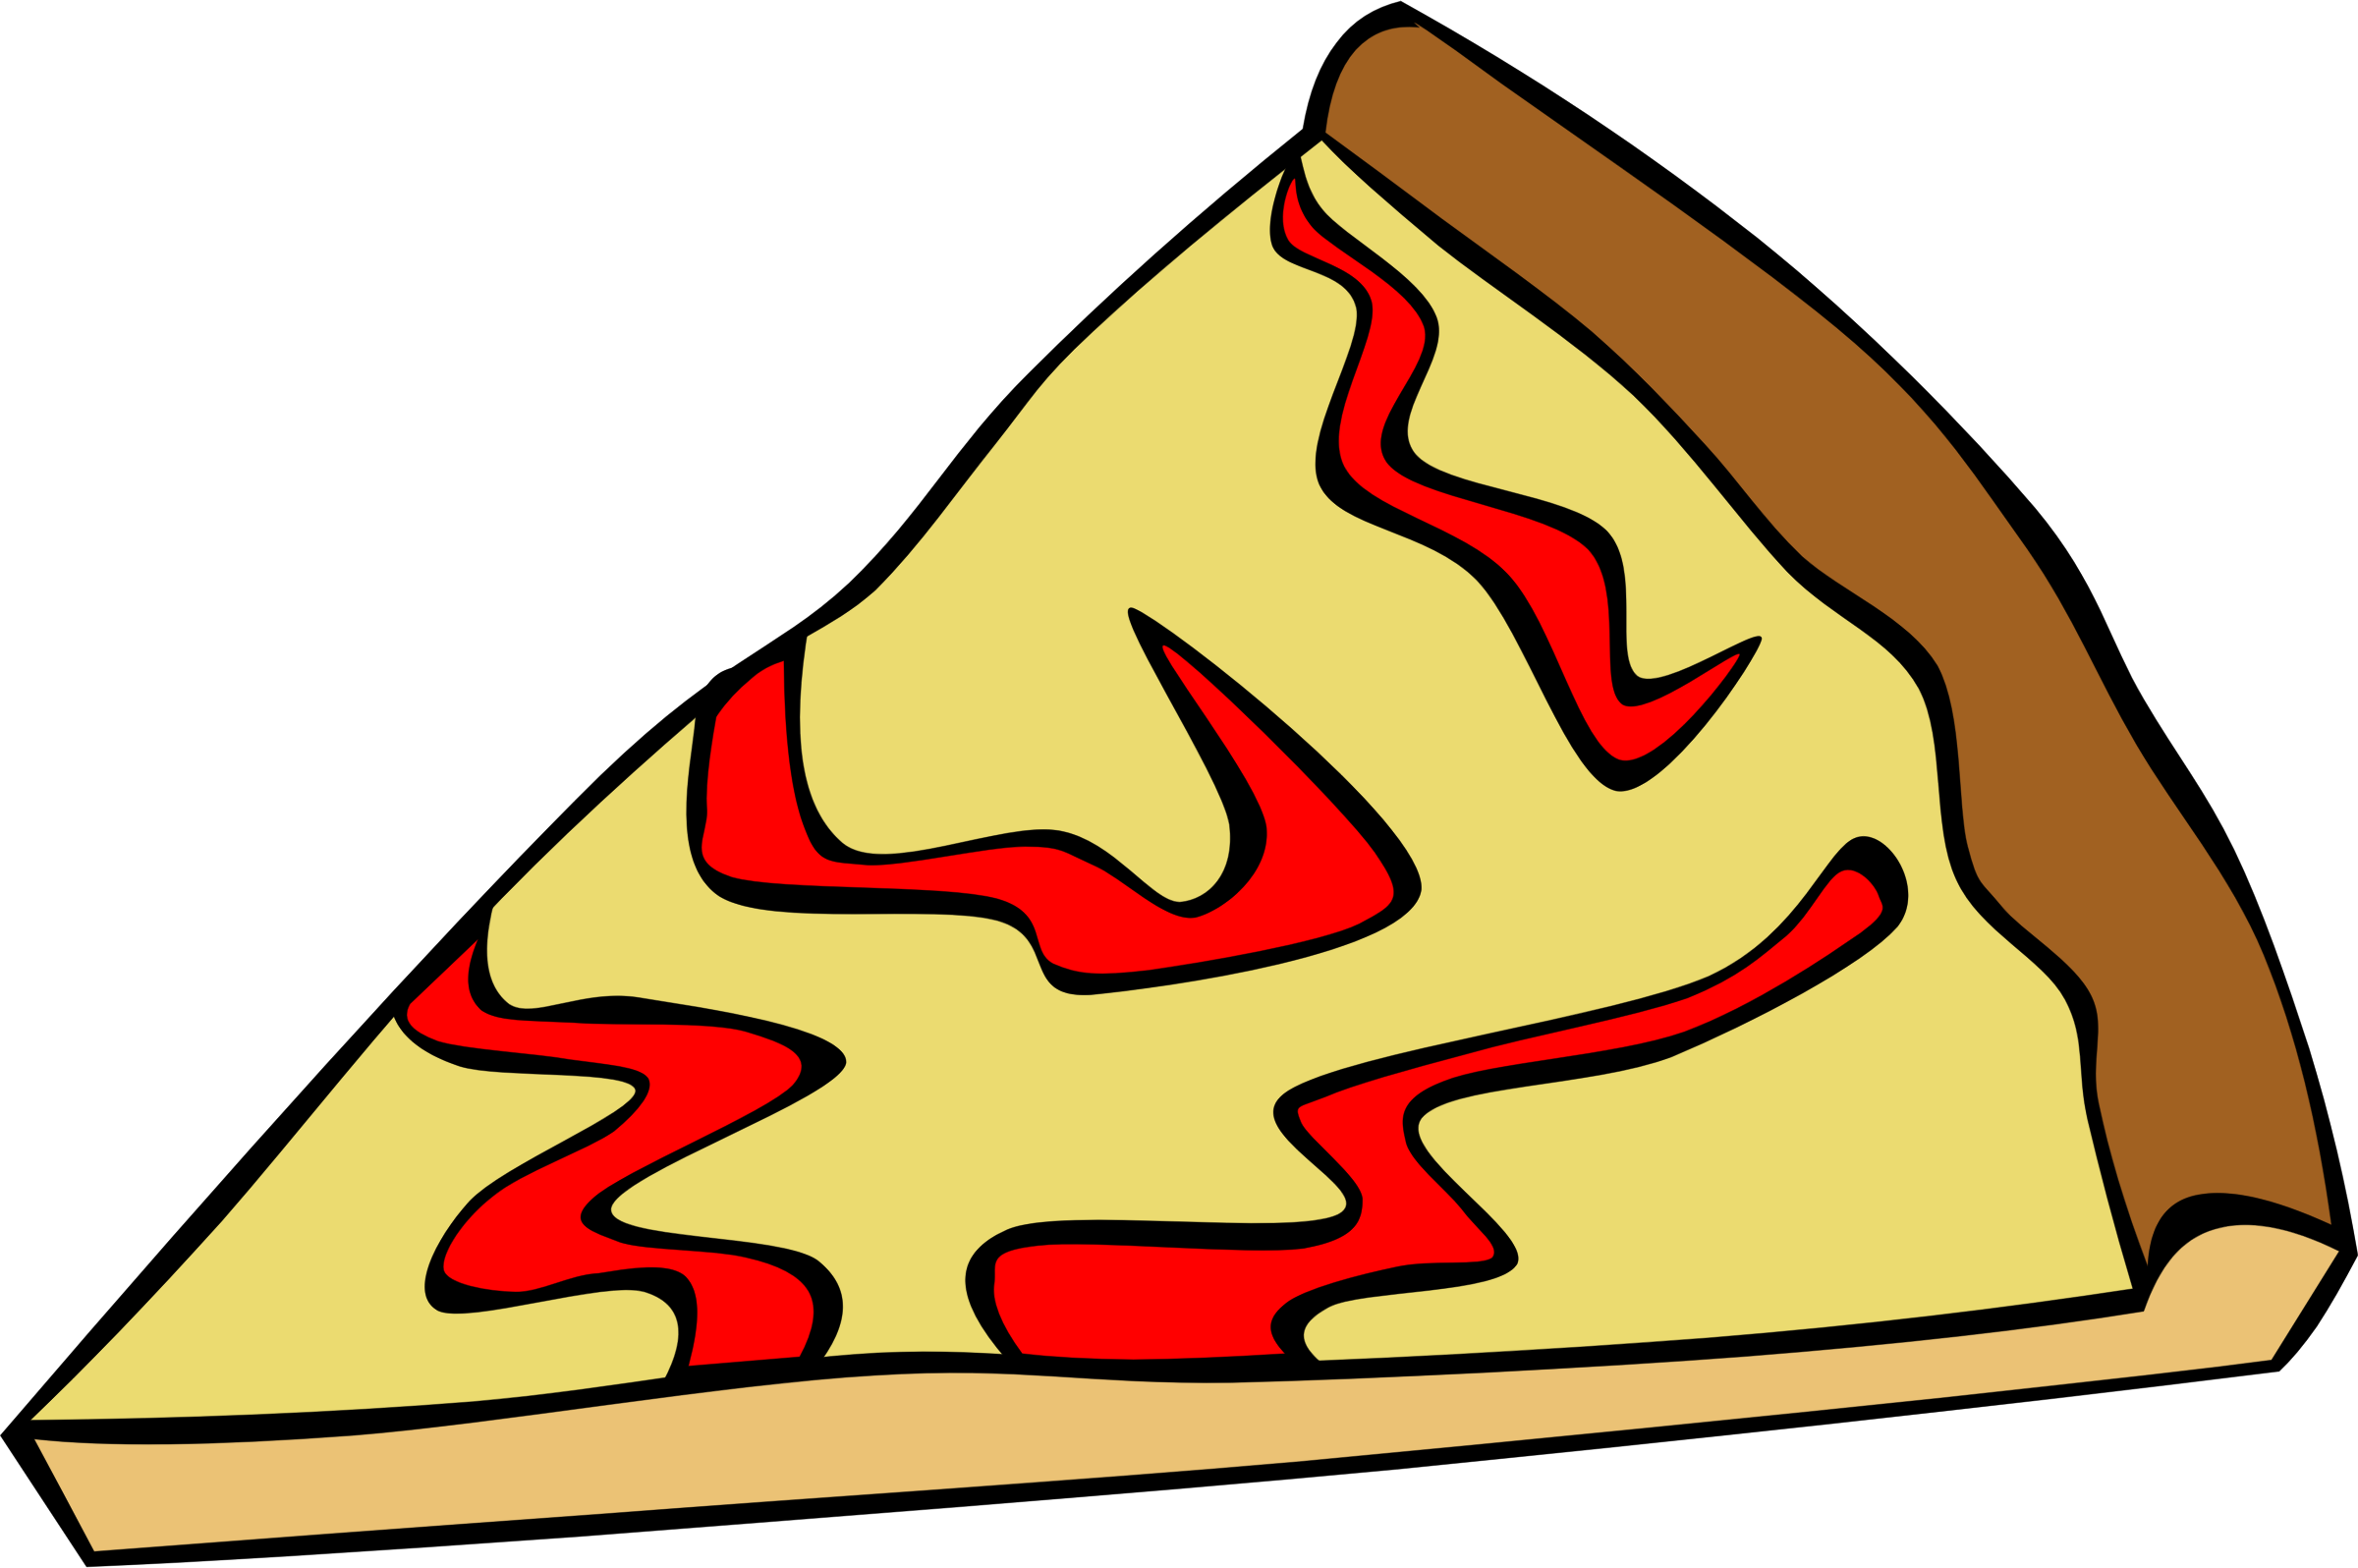 Cheese vector png. Fast food snack pizza